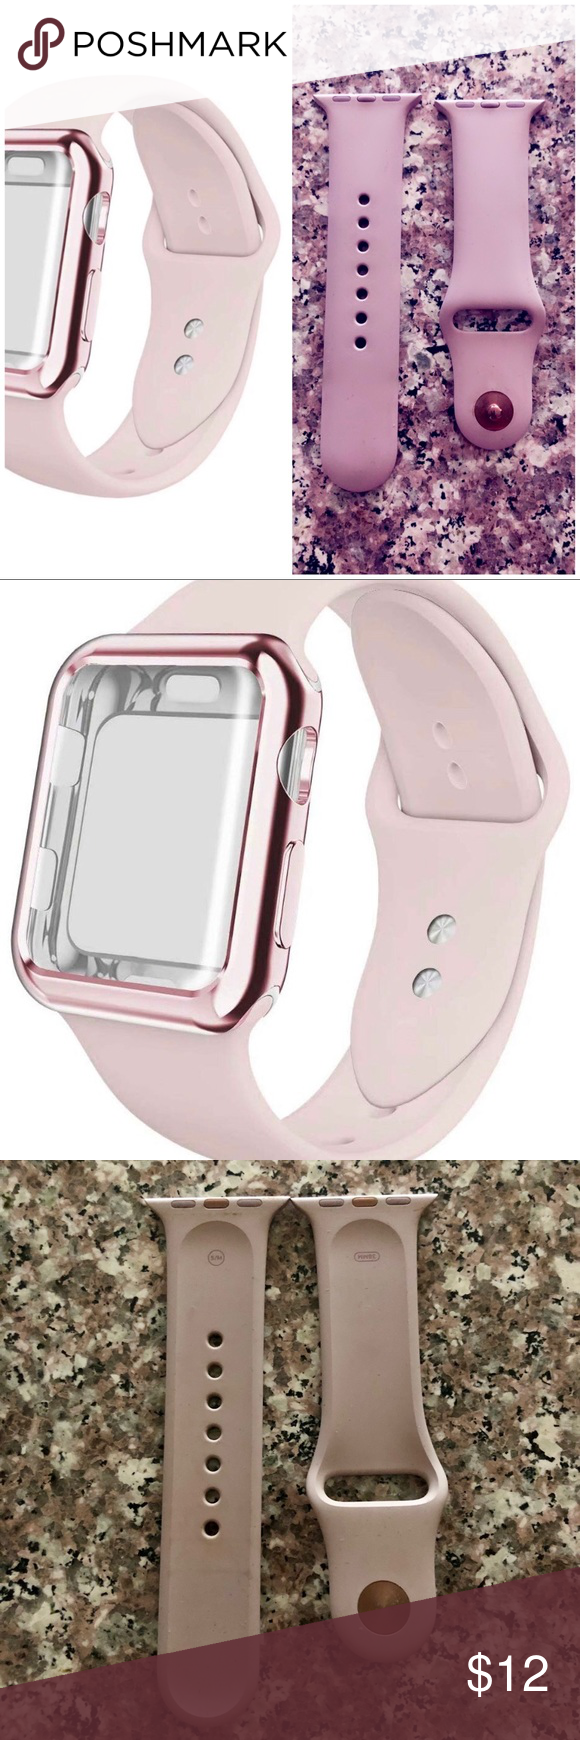 SOLD🛑Pale pink Apple Watch Band 38mm 38mm apple watch